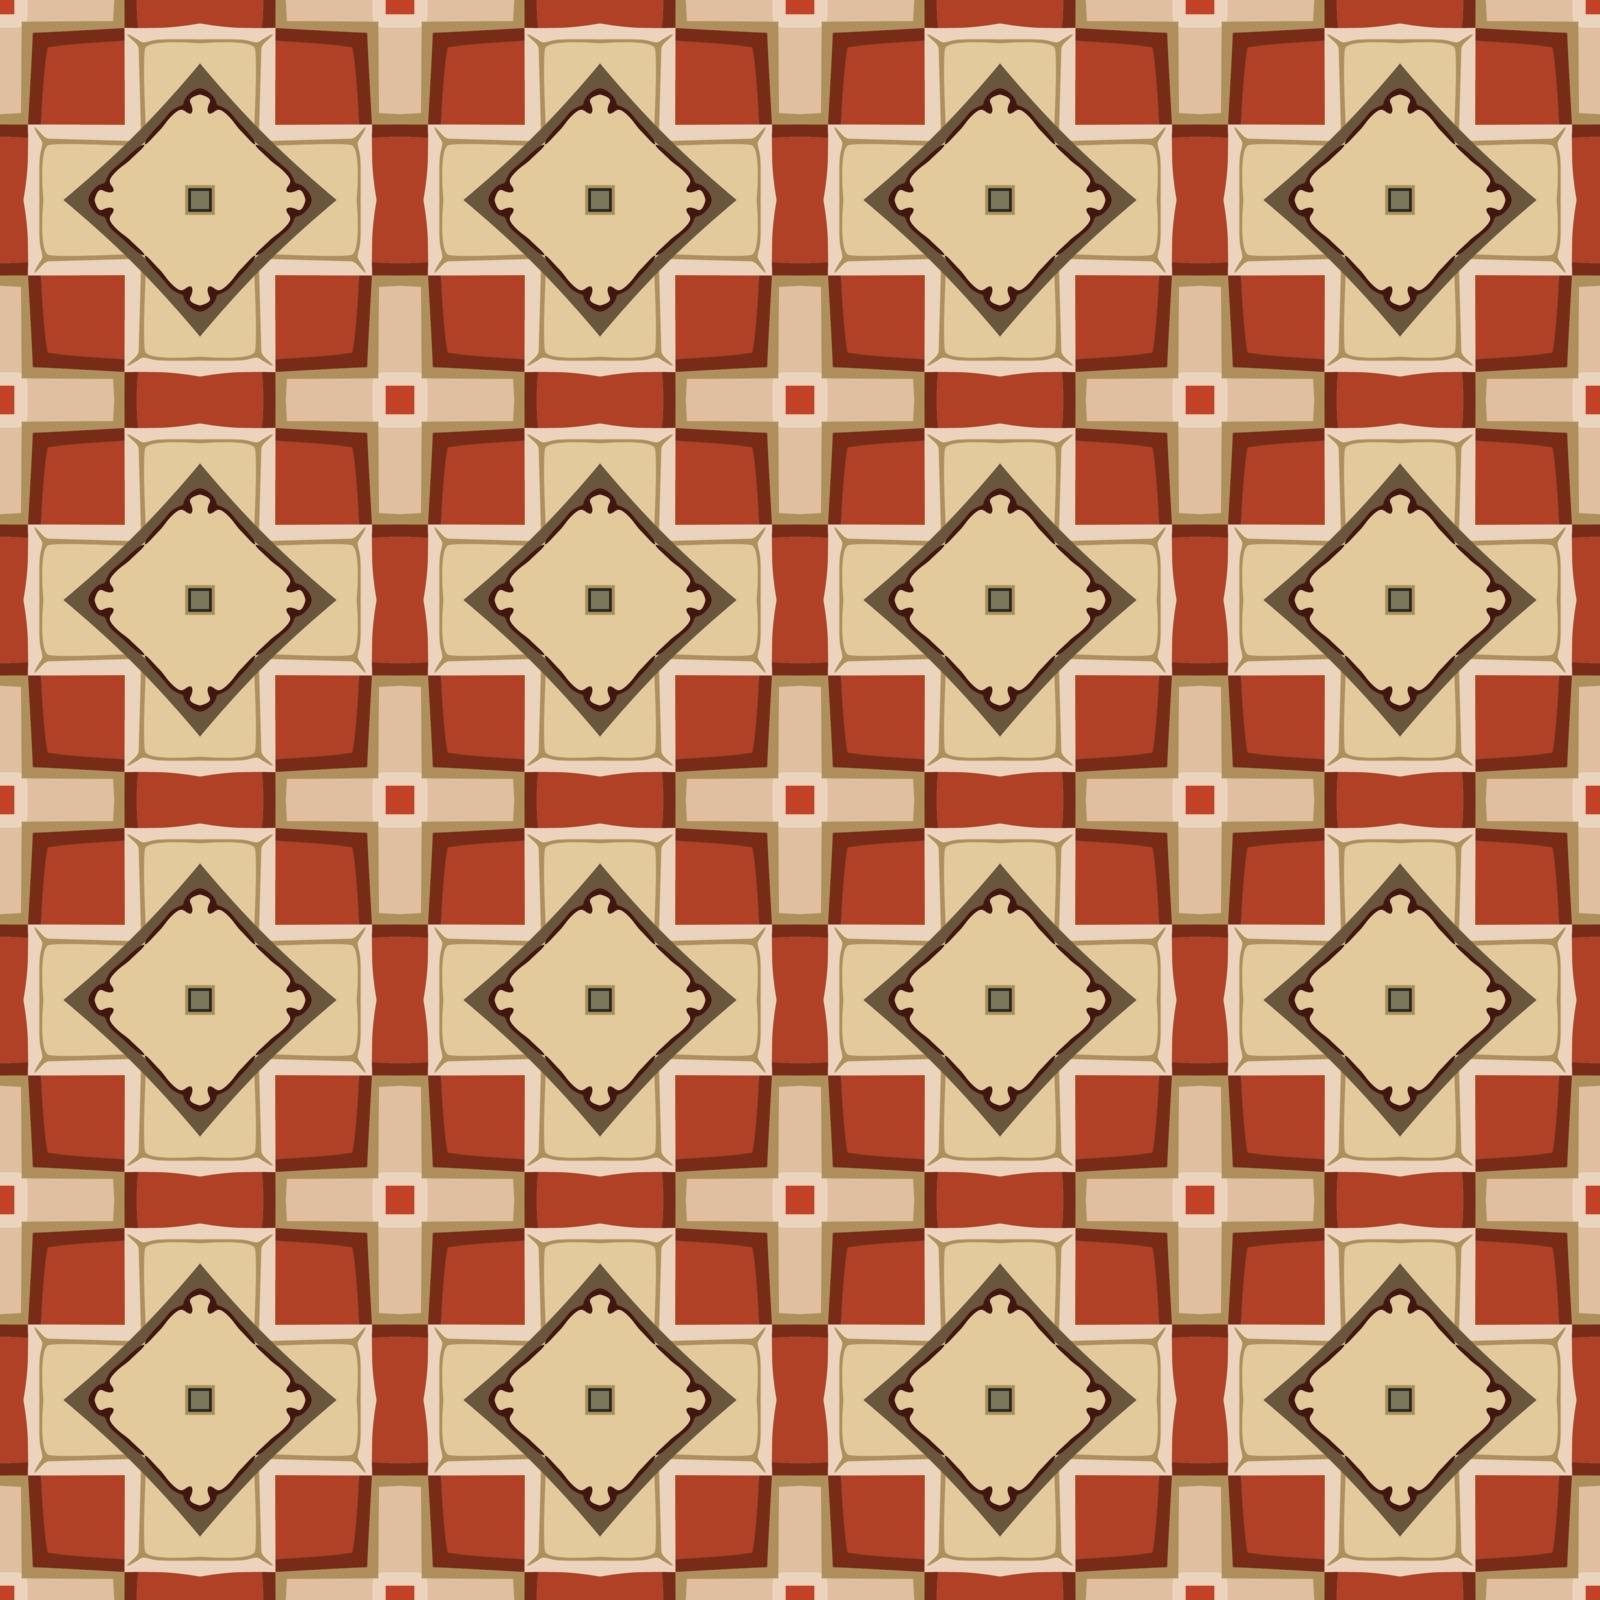 Seamless illustrated pattern made of abstract elements in beige, pale yellow, red and brown